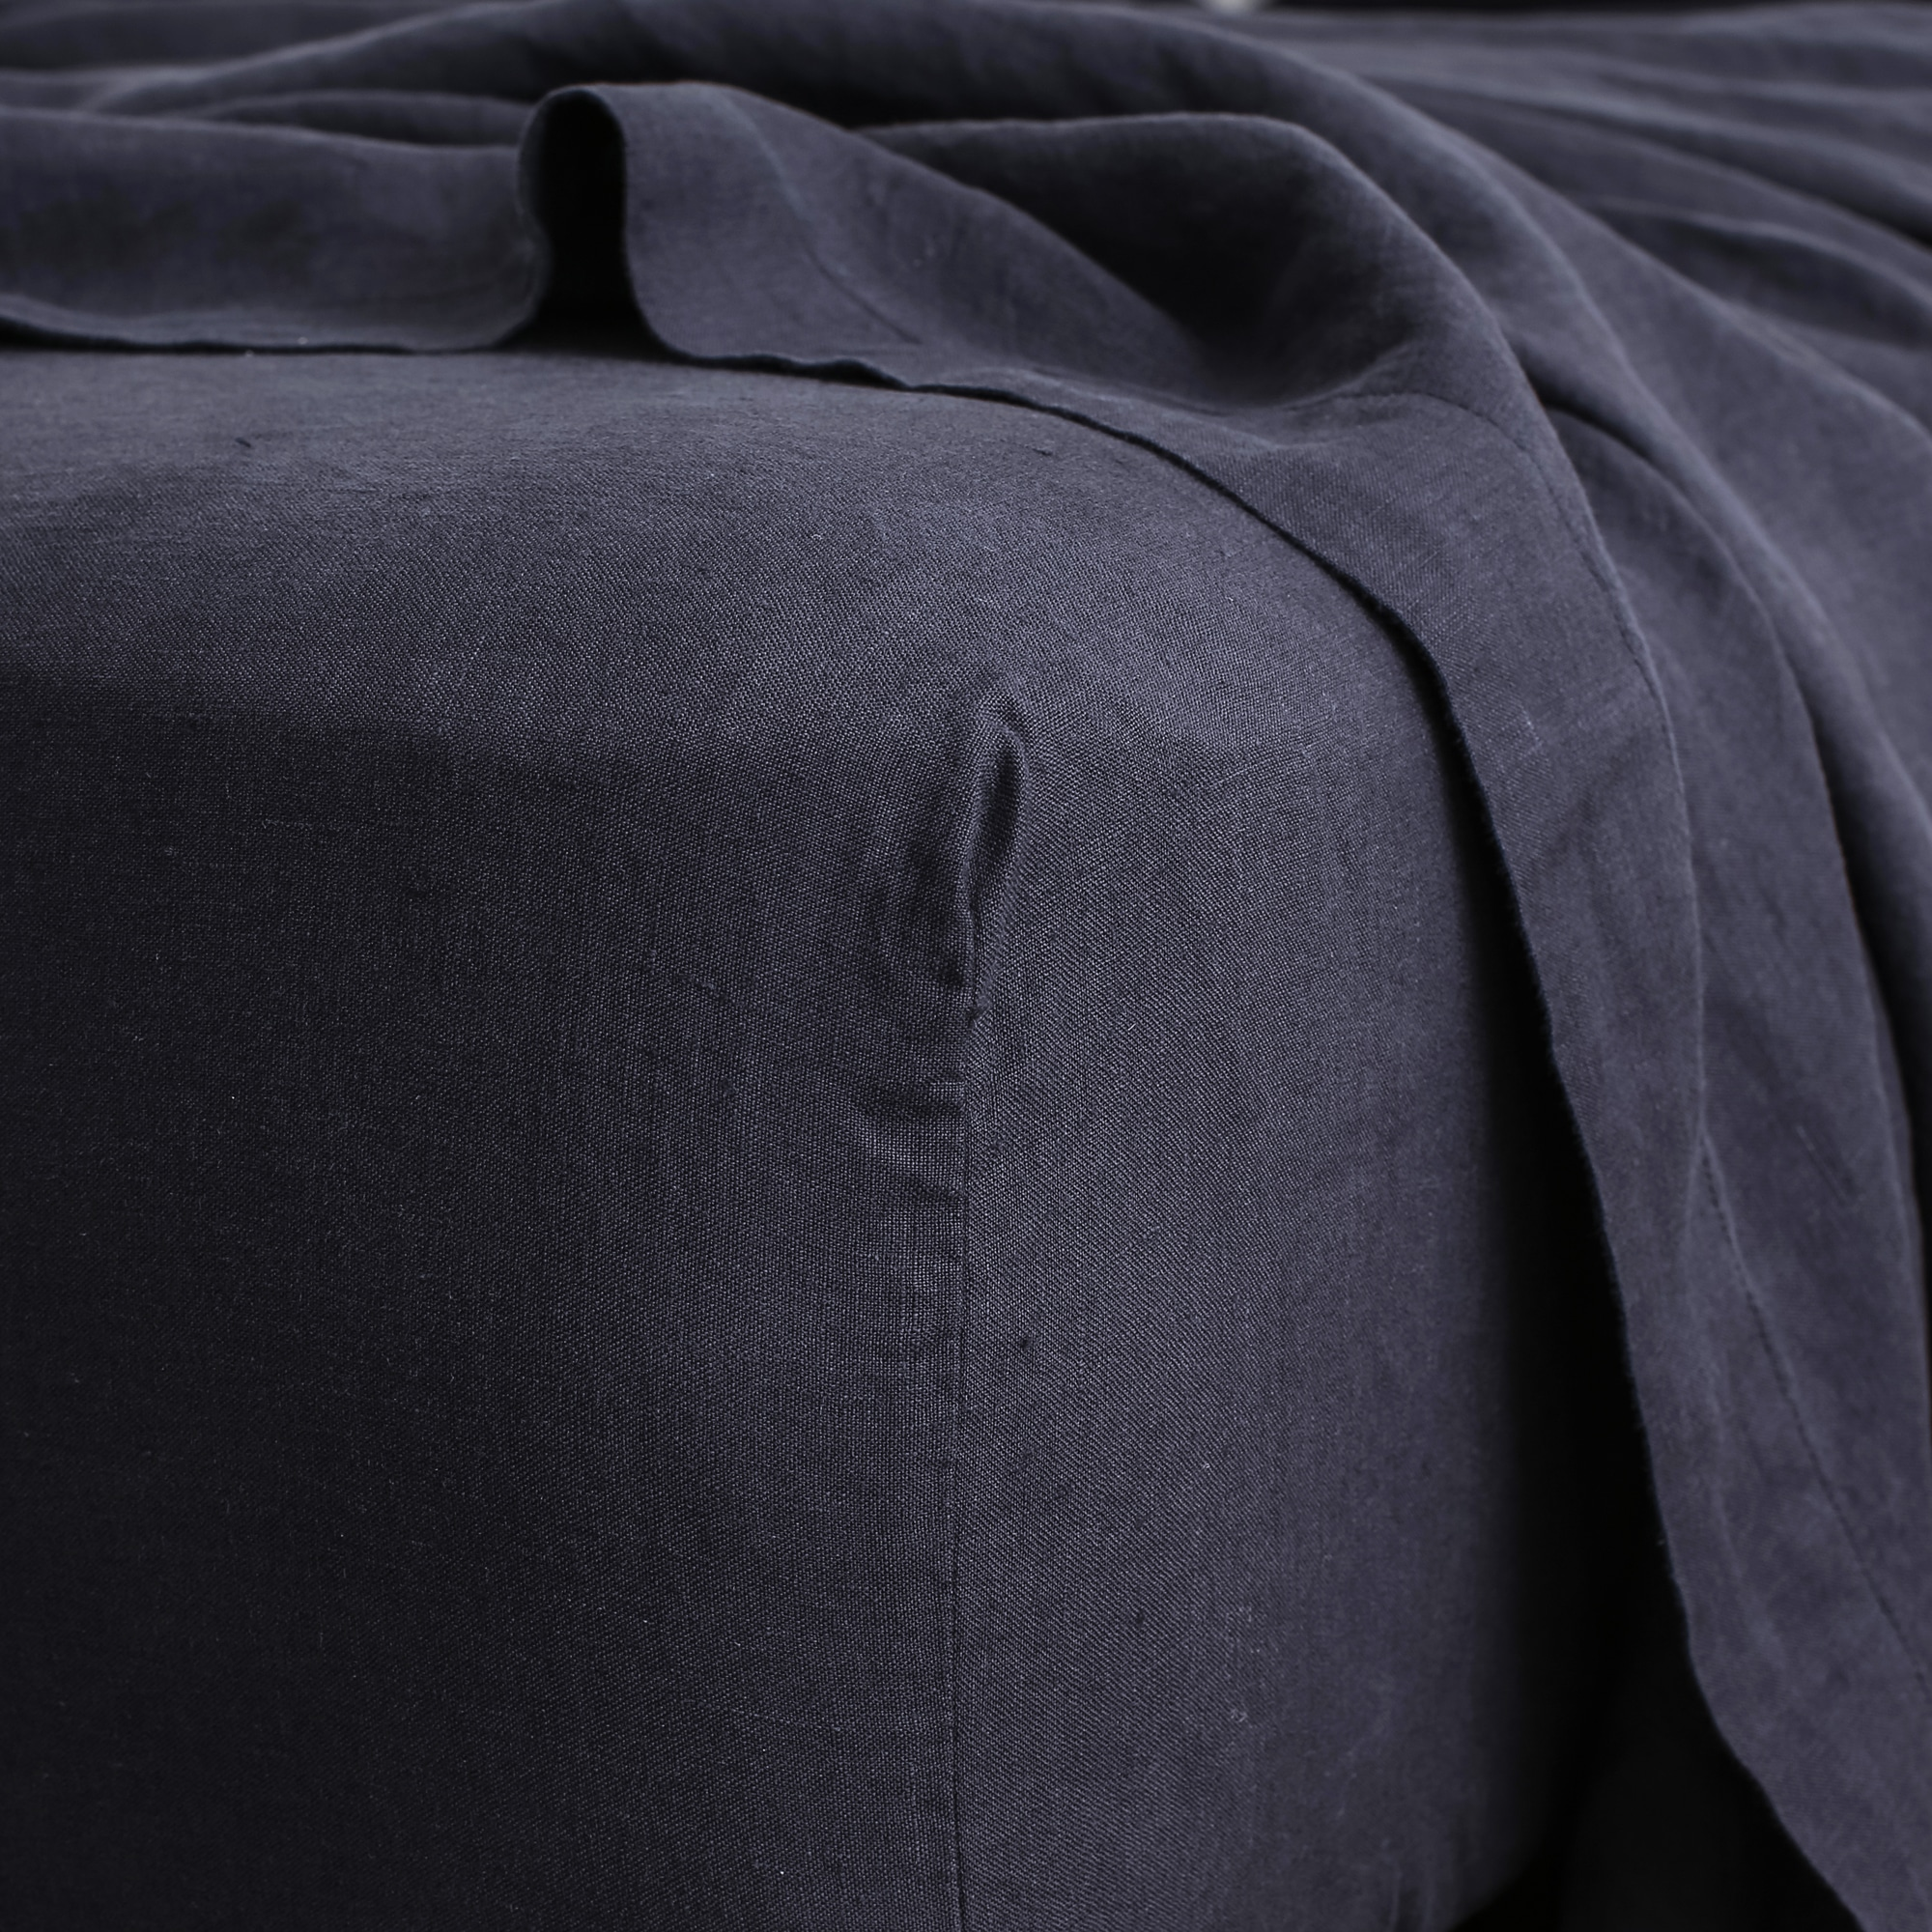 Navy fitted sheet detail from Monsoon Living Newcastle